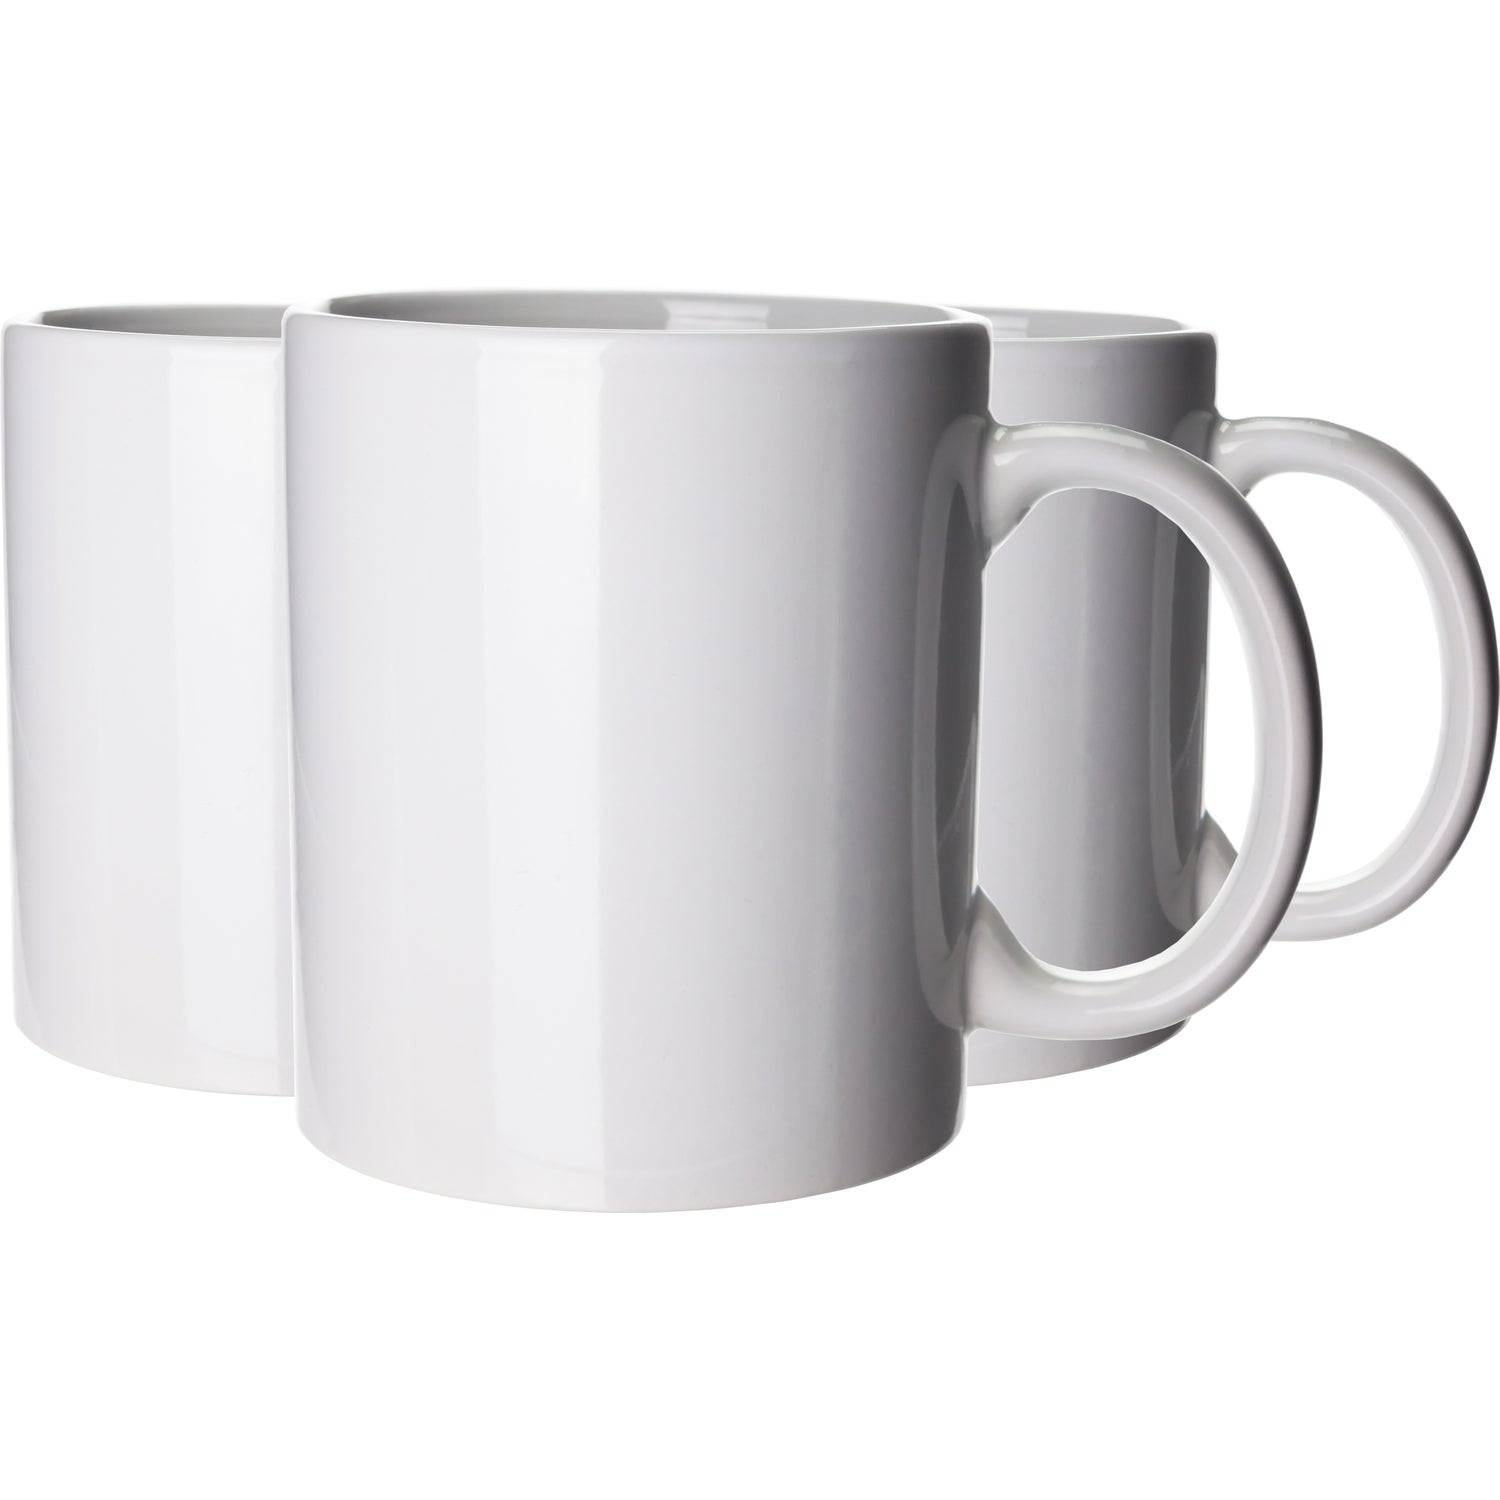 0236183af88 CLICK HERE to Order 11 Oz. Budget Coffee Mugs Printed with Your Logo ...